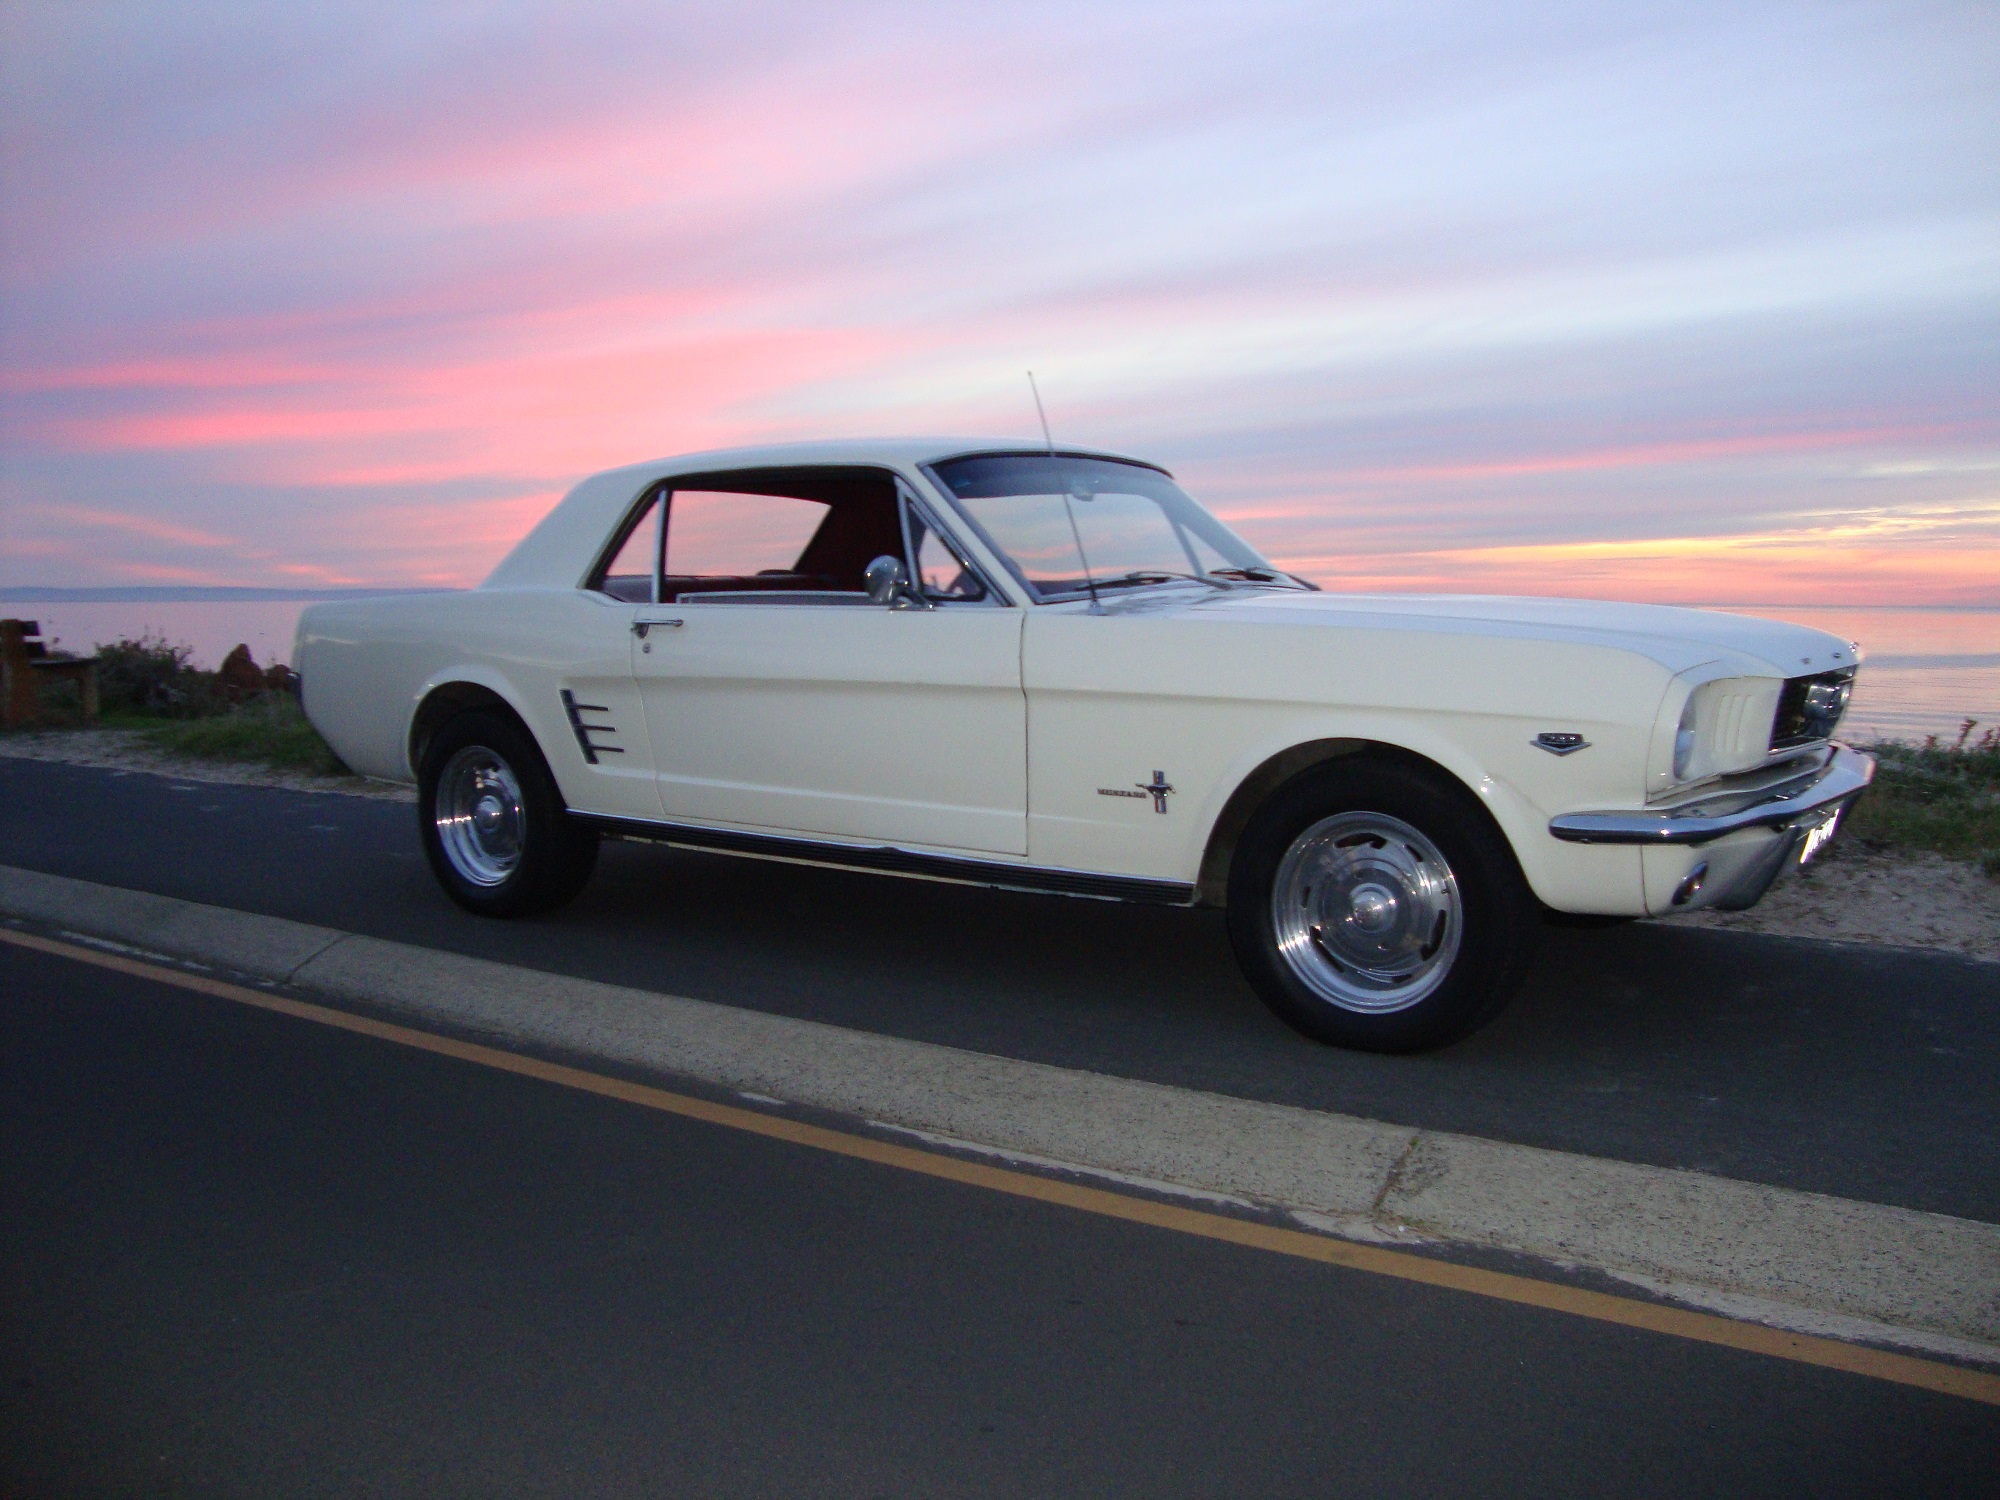 The Motor Shed Mustang